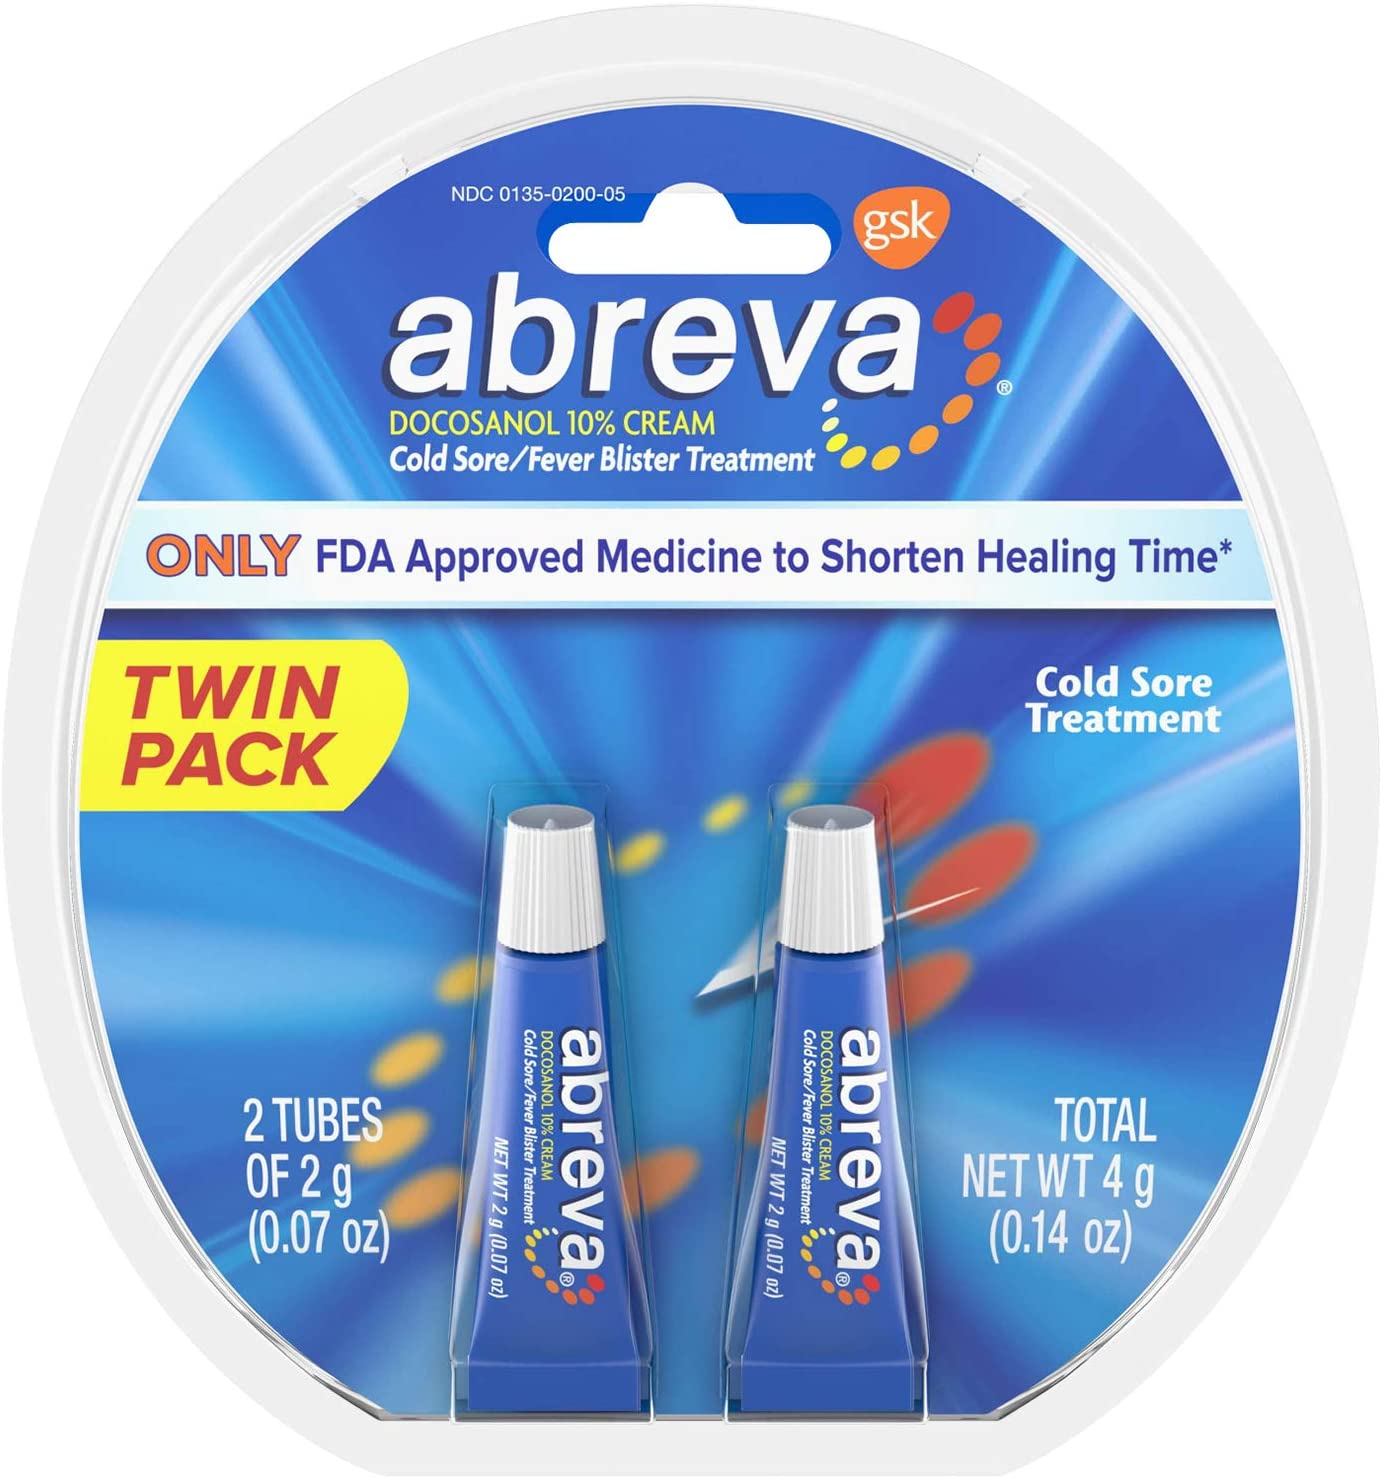 Abreva Docosanol Cold Sore Treatment 10% Cream Tube, Only FDA Approved Treatment for Cold Sore and Fever Blister, 2g Tube (Pack of 2): Health & Personal Care